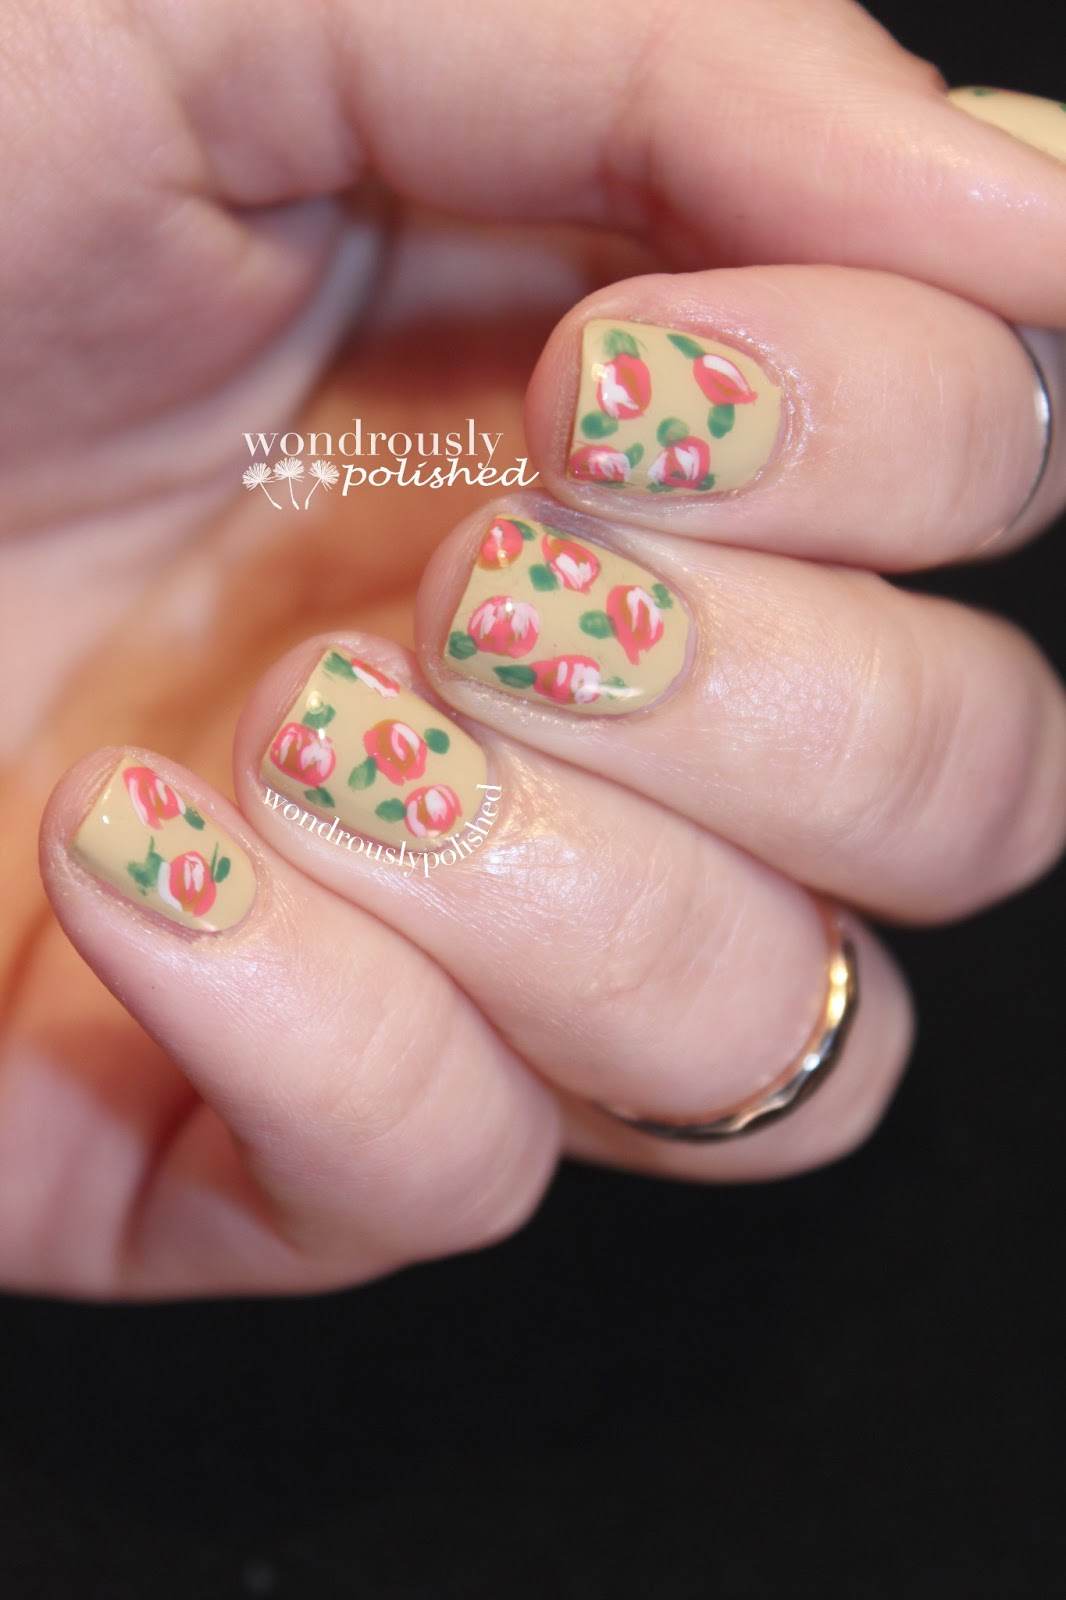 Wondrously Polished February Nail Art Challenge: Wondrously Polished: March Nail Art Challenge